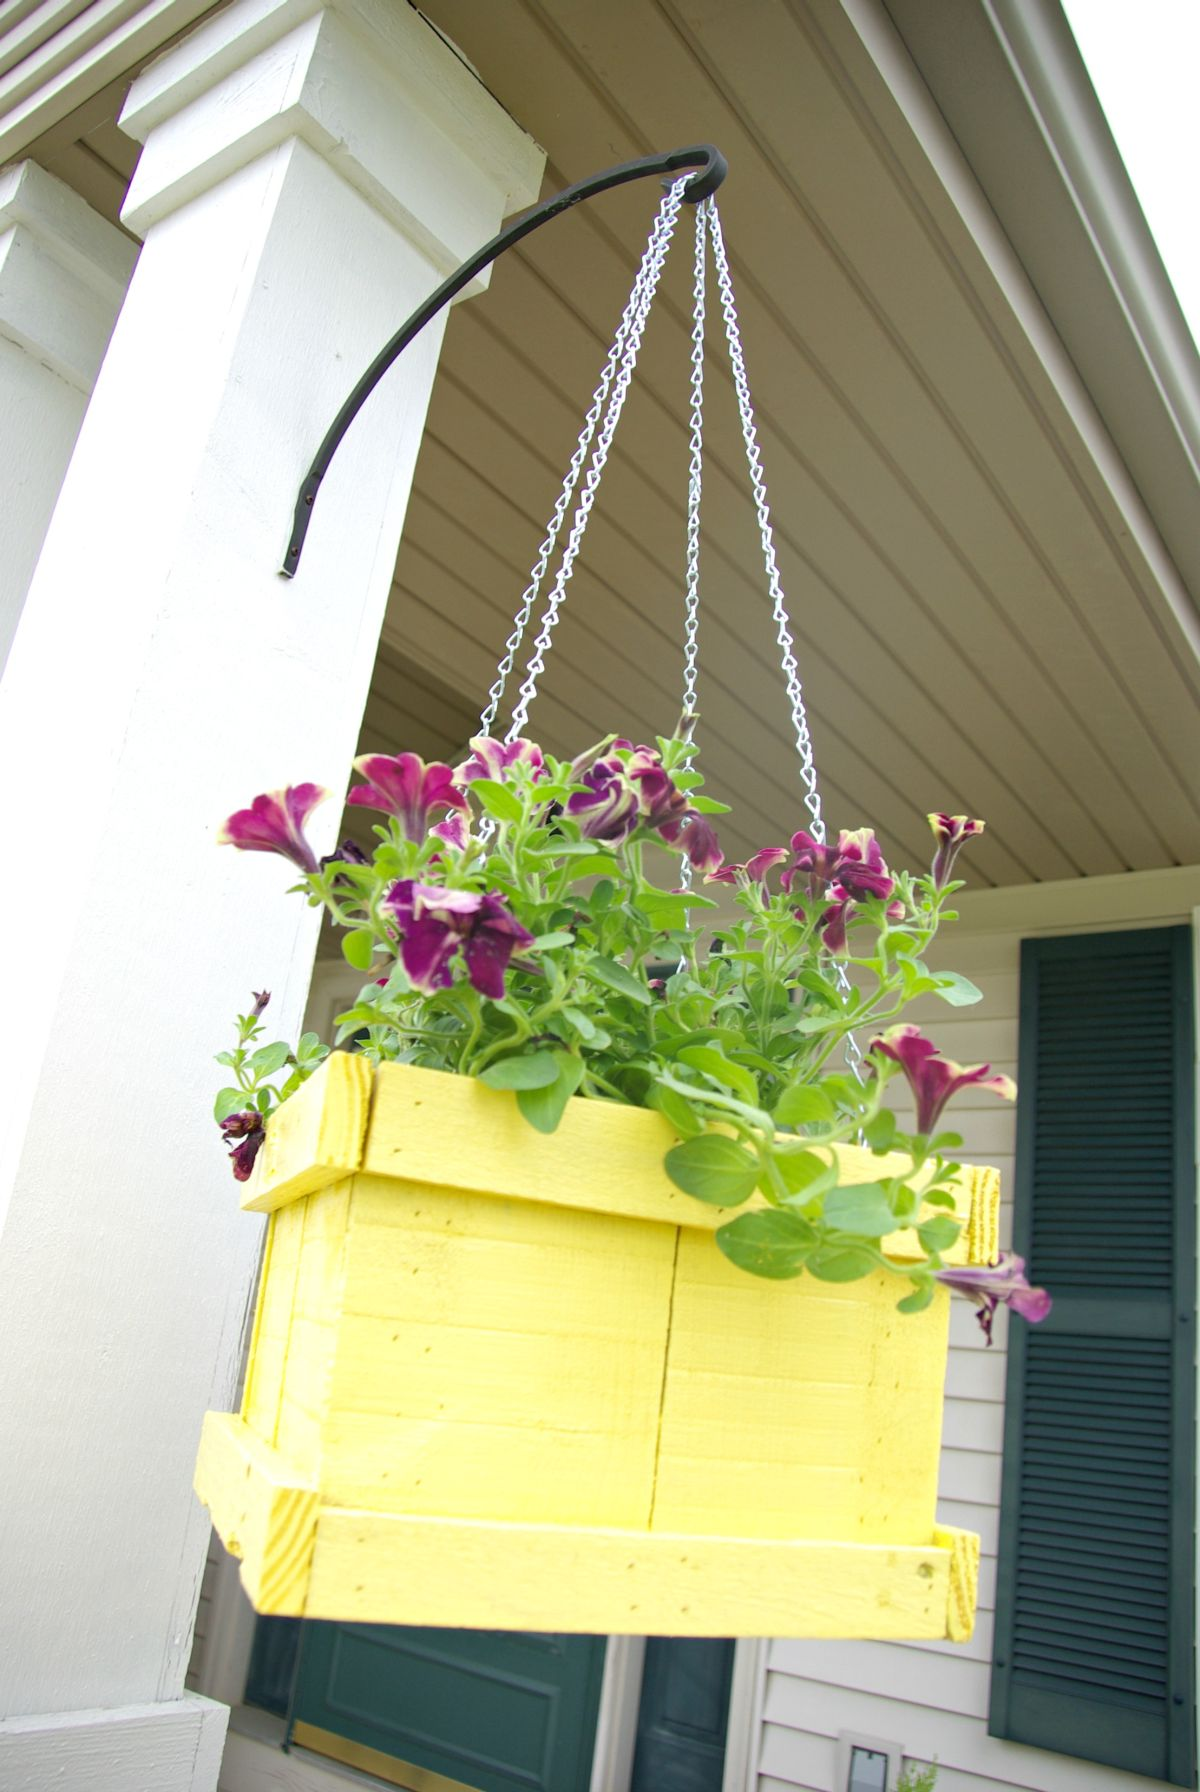 Wood pallet hanging planter, Homedit article